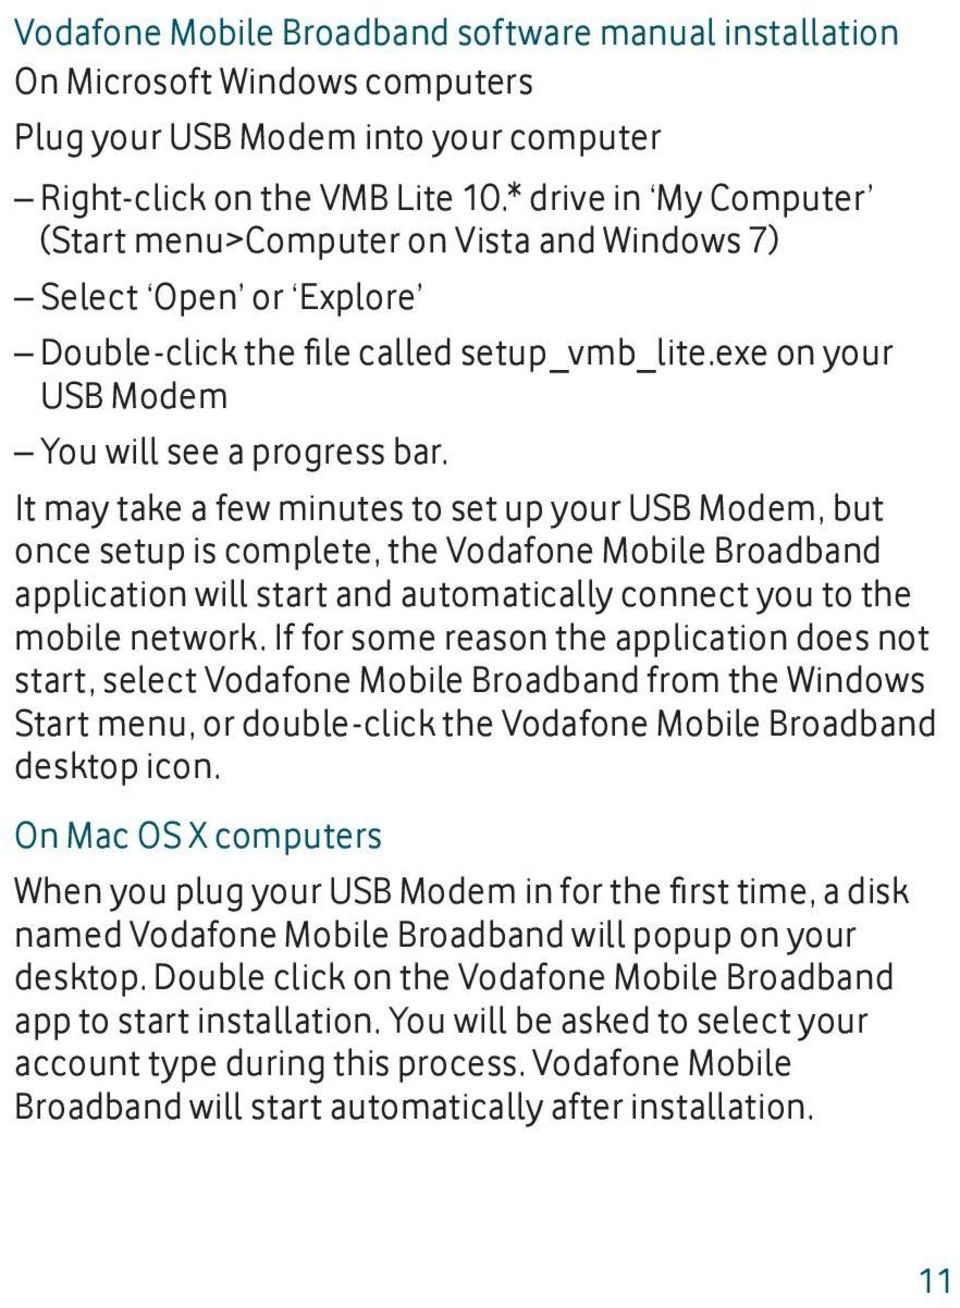 It may take a few minutes to set up your USB Modem, but once setup is complete, the Vodafone Mobile Broadband application will start and automatically connect you to the mobile network.